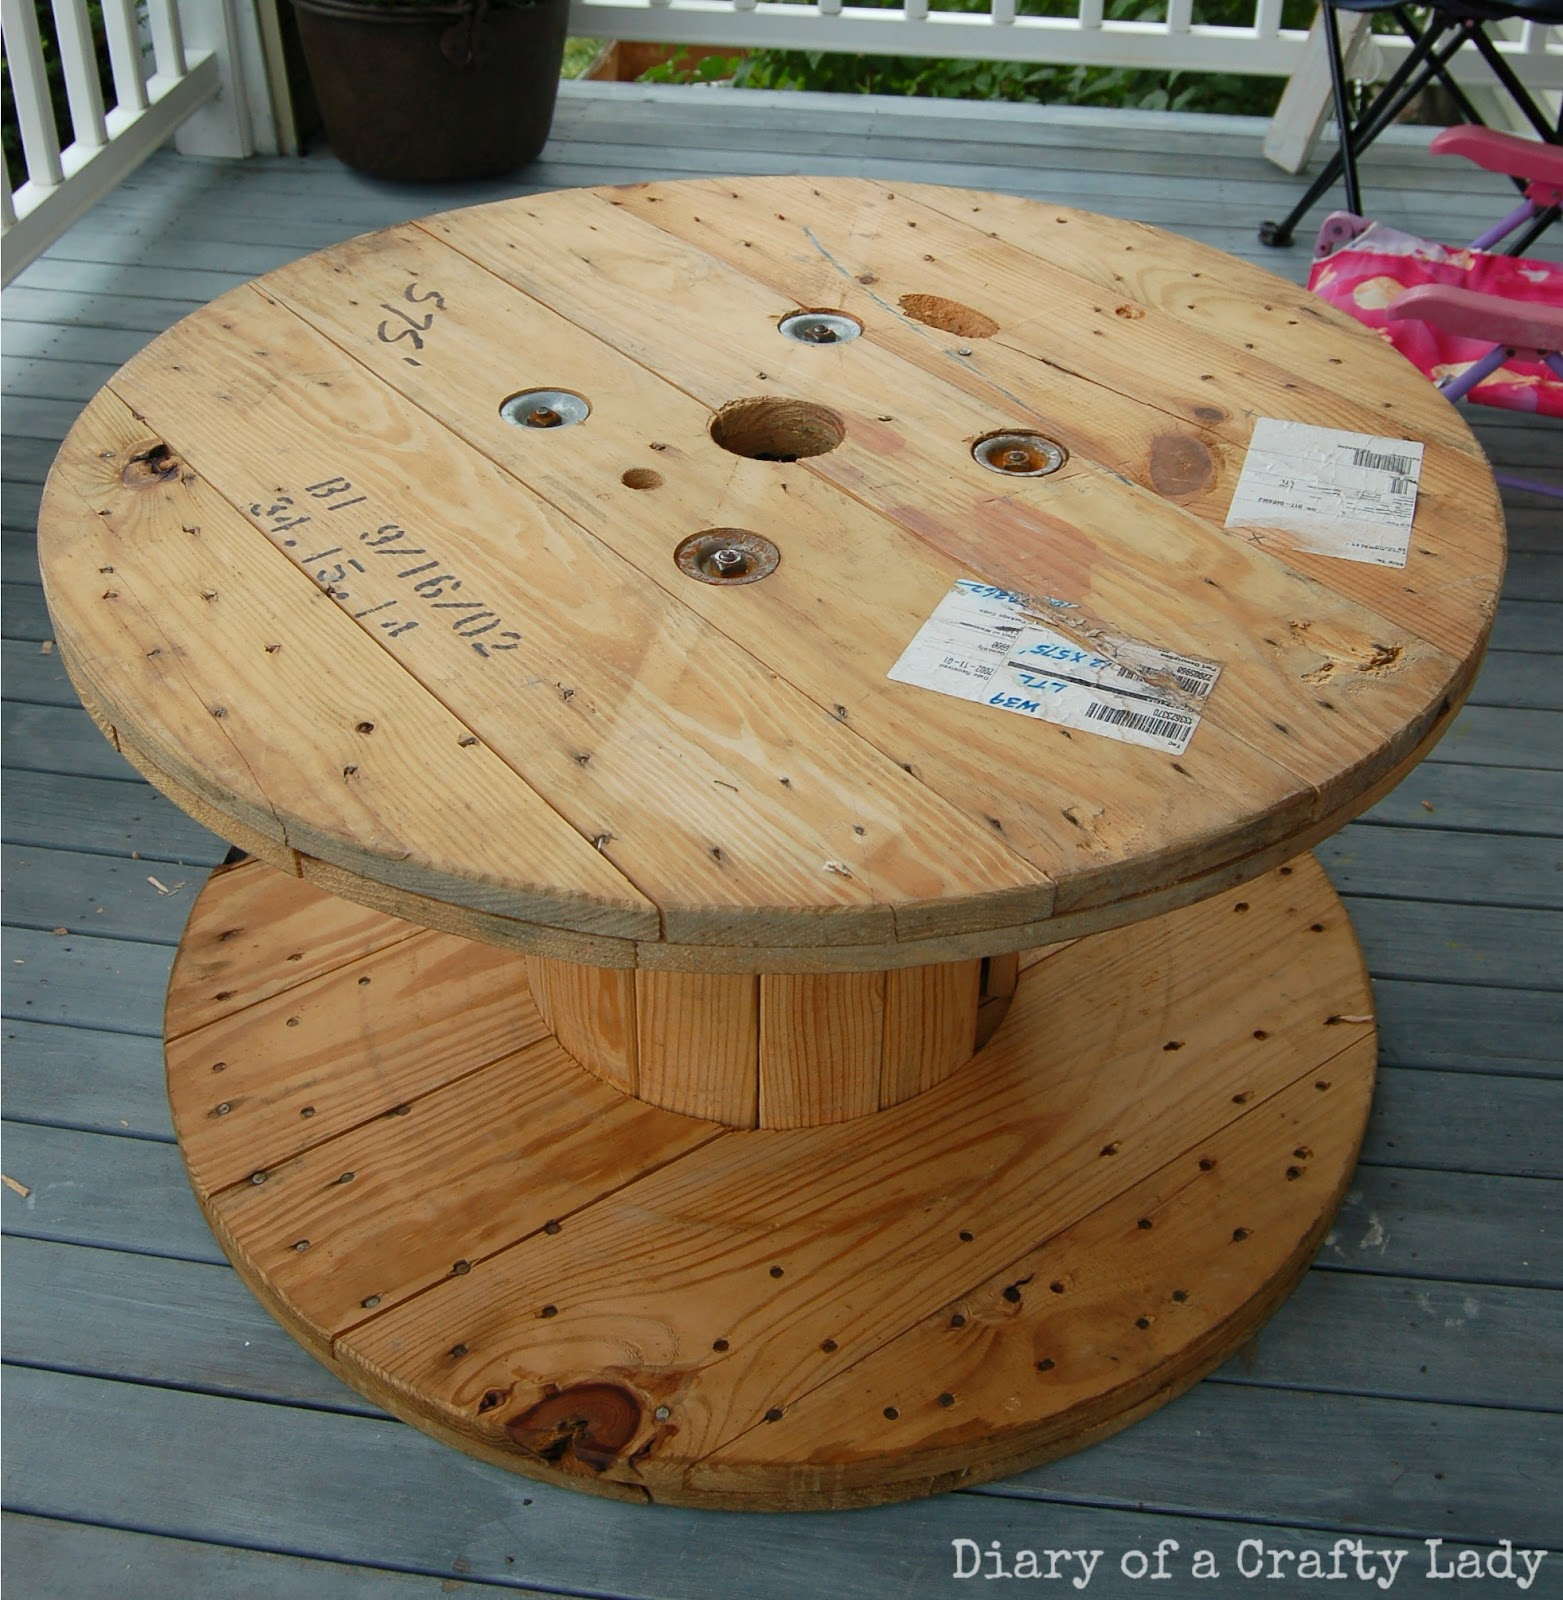 Diary of a Crafty Lady: Wooden Spool Rolling Bookshelf and Stool